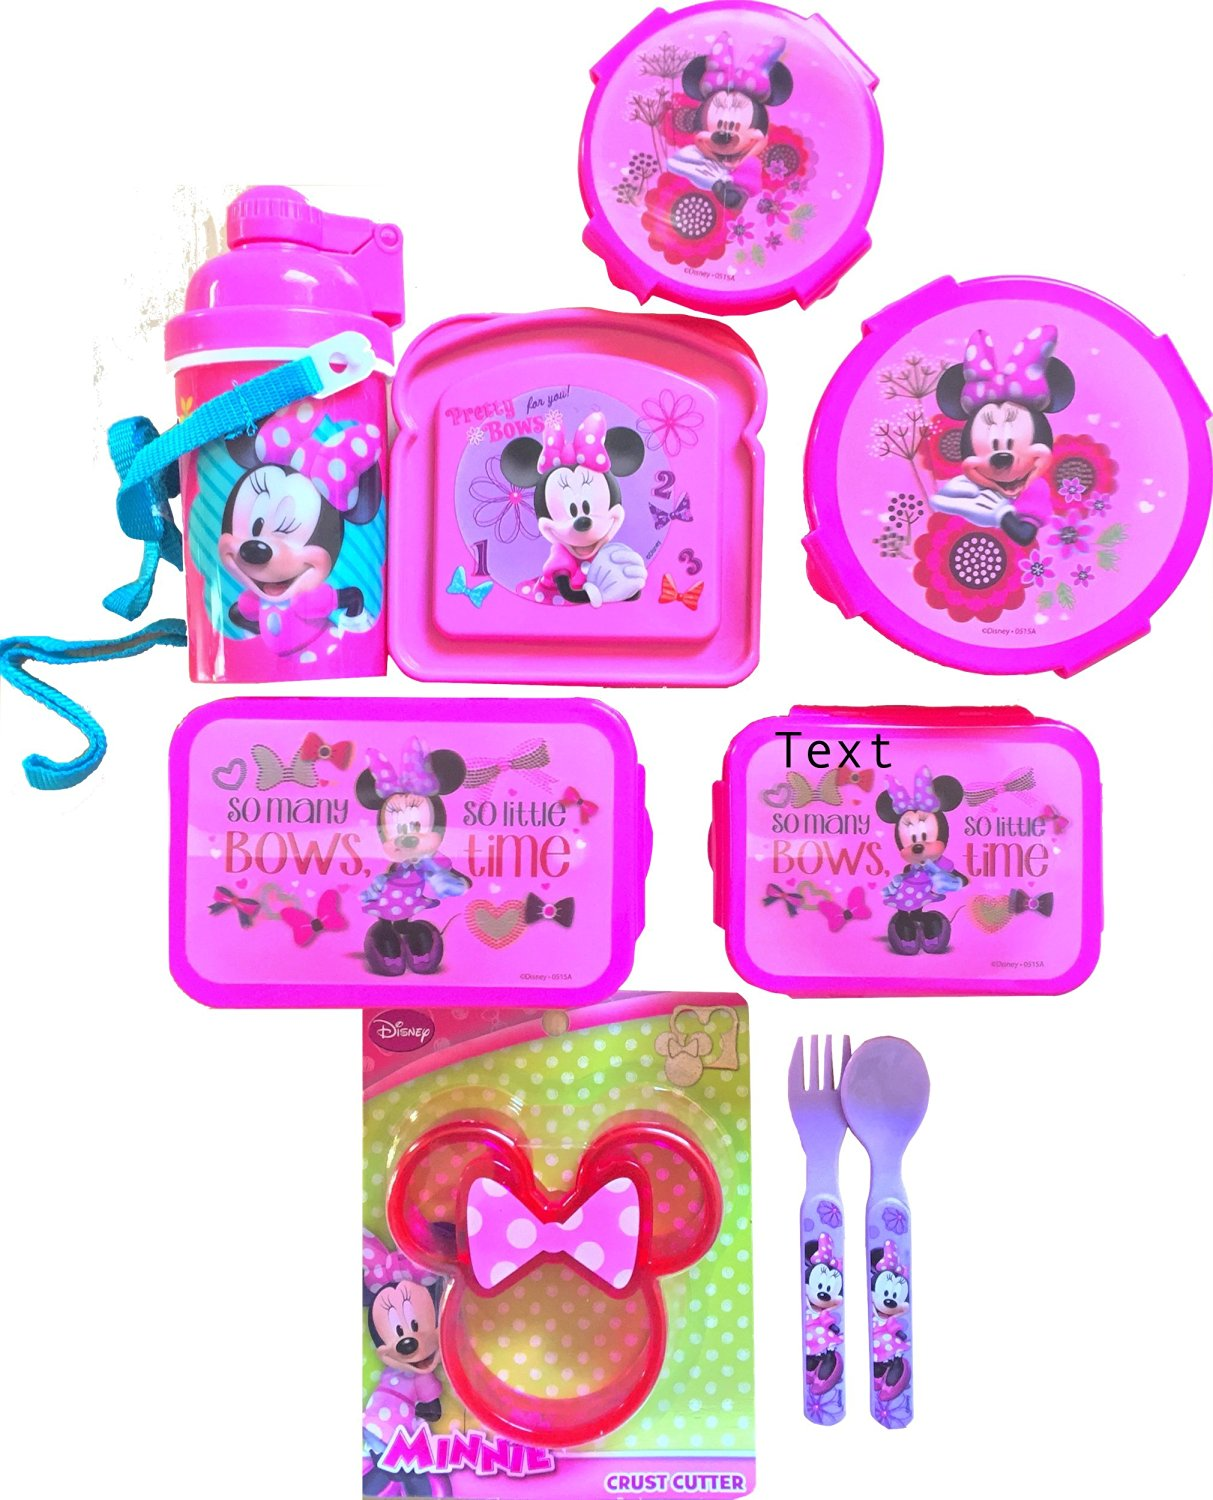 Minnie Mouse 9Pc Children's Lunch Gift Set With Snack & Food Storages, Bottle, Crust Cutter & Utensils